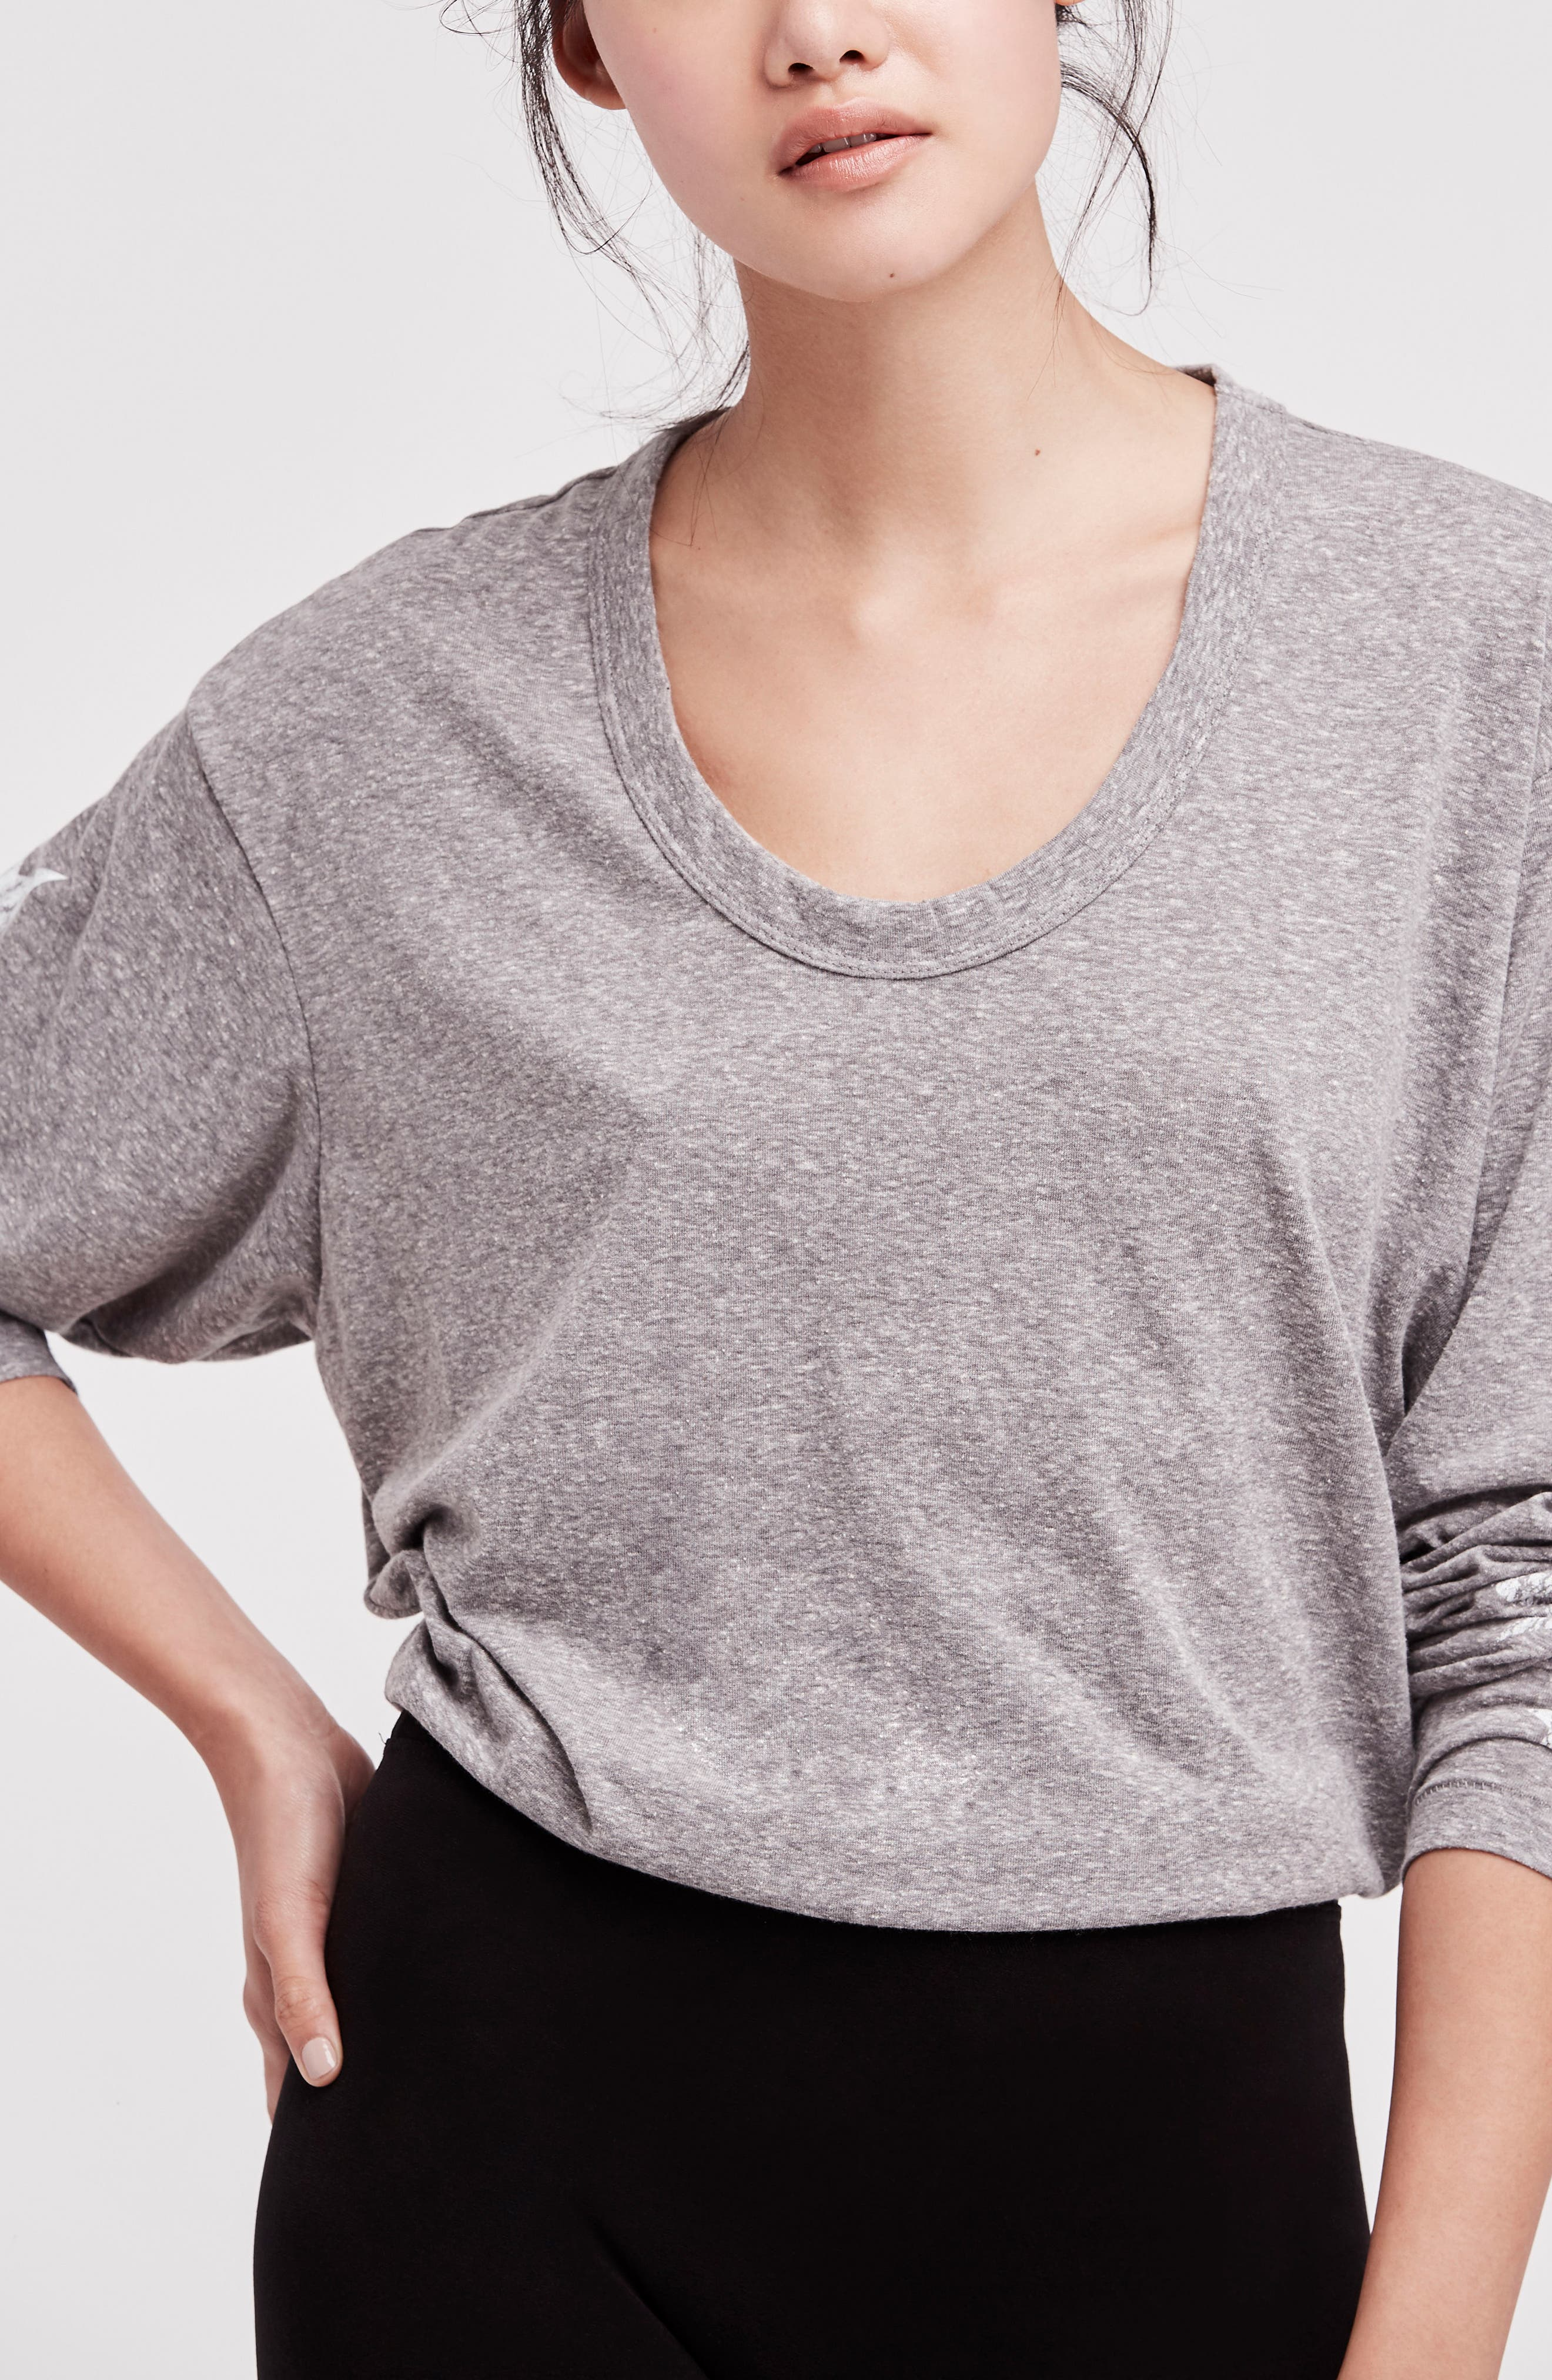 Free People Melrose Star Graphic Top,                             Alternate thumbnail 2, color,                             Grey